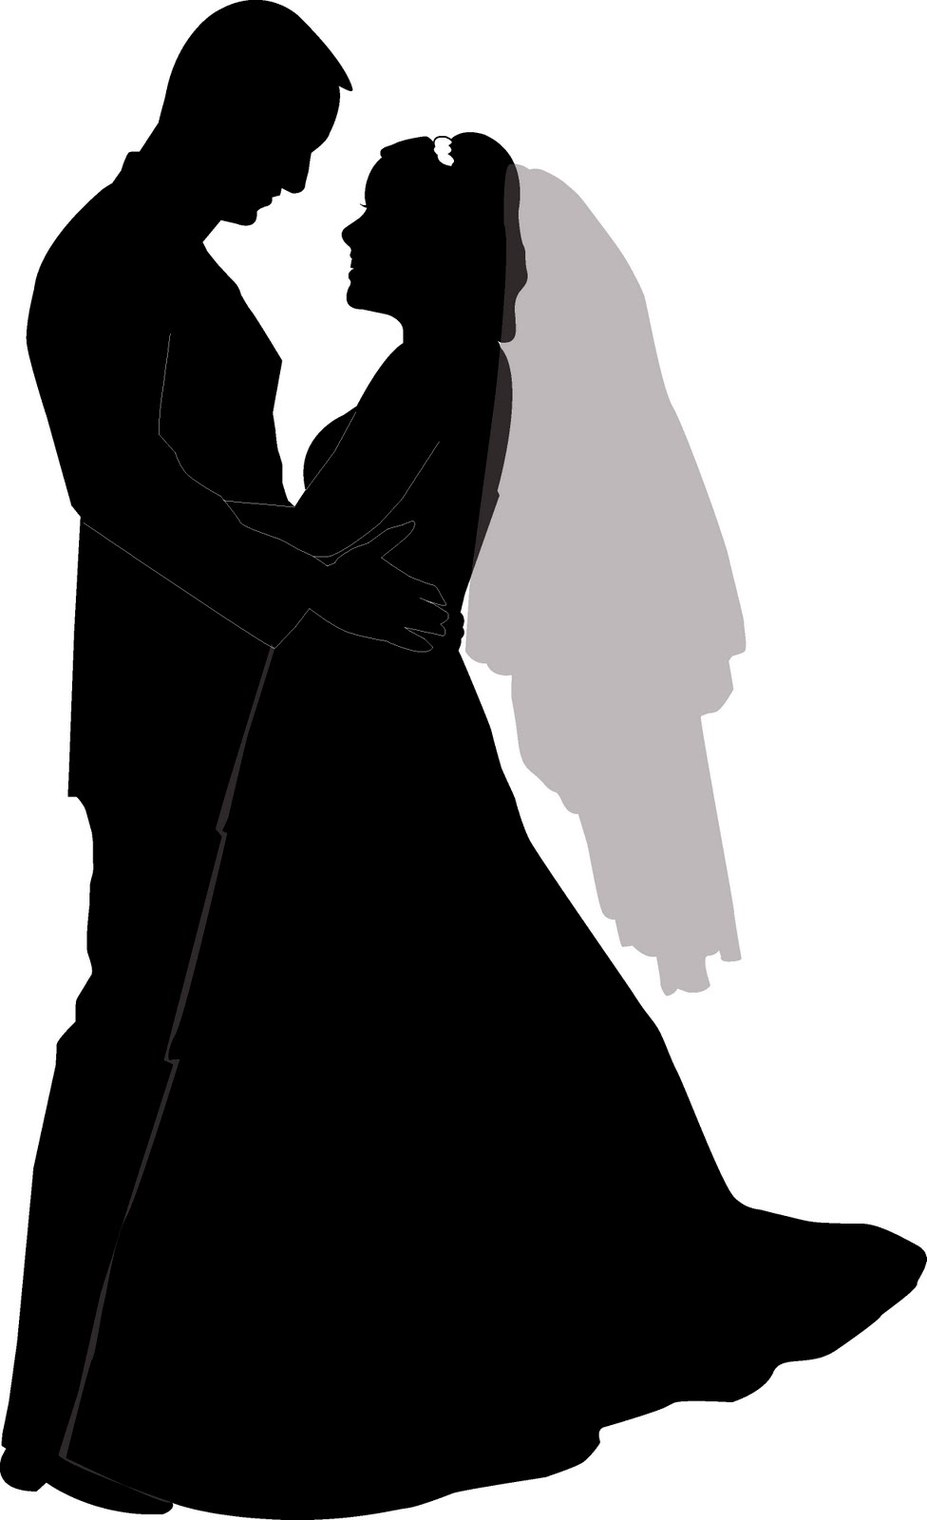 Clipart of two people wedding clipart freeuse library Clipart of two people wedding - ClipartFest clipart freeuse library